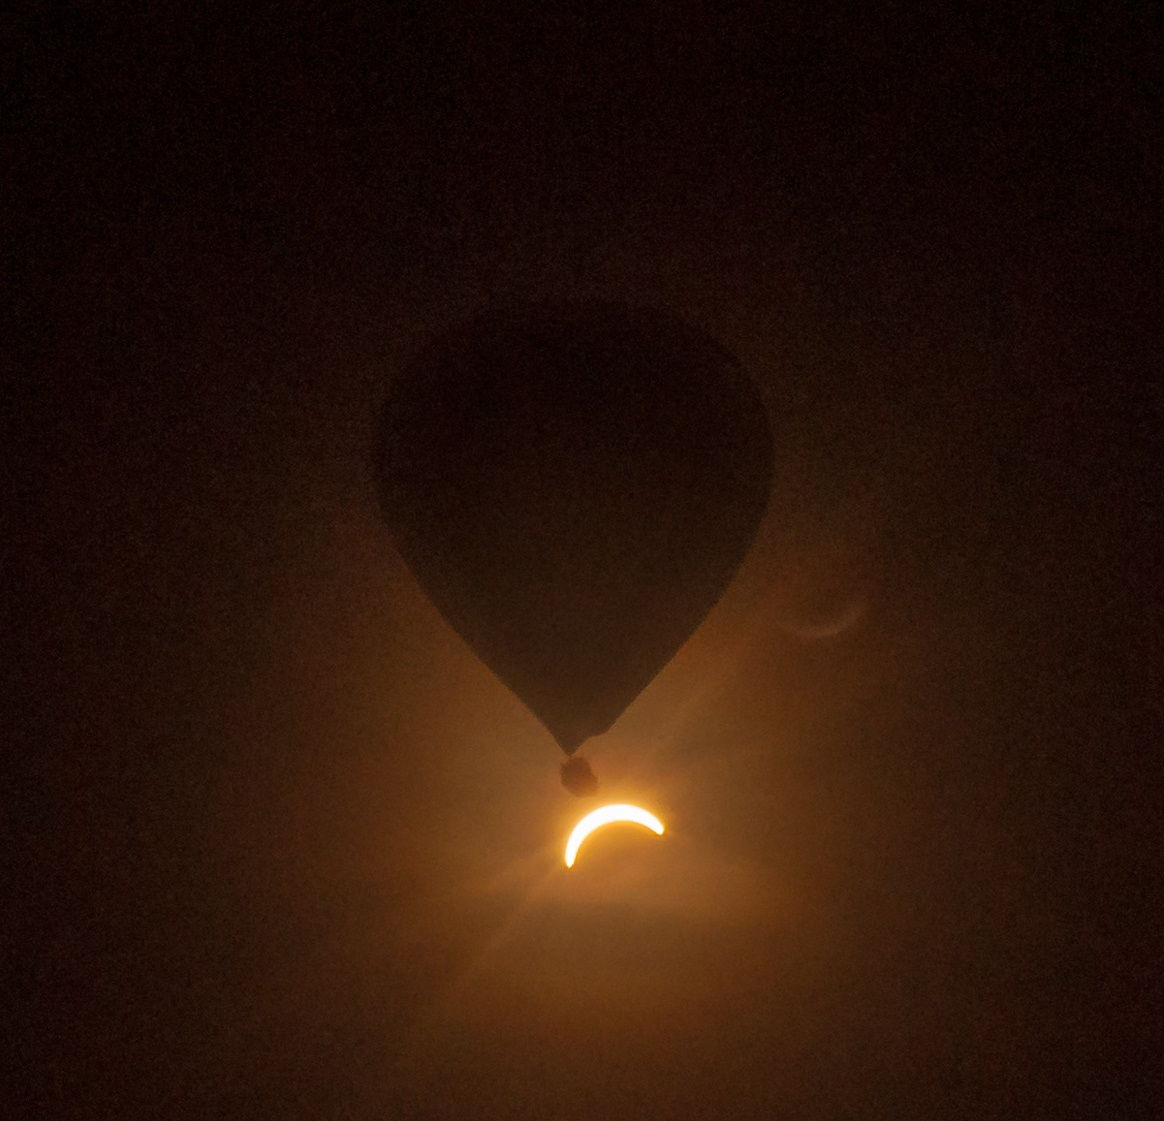 Solar Eclipse From a Hot Air Balloon